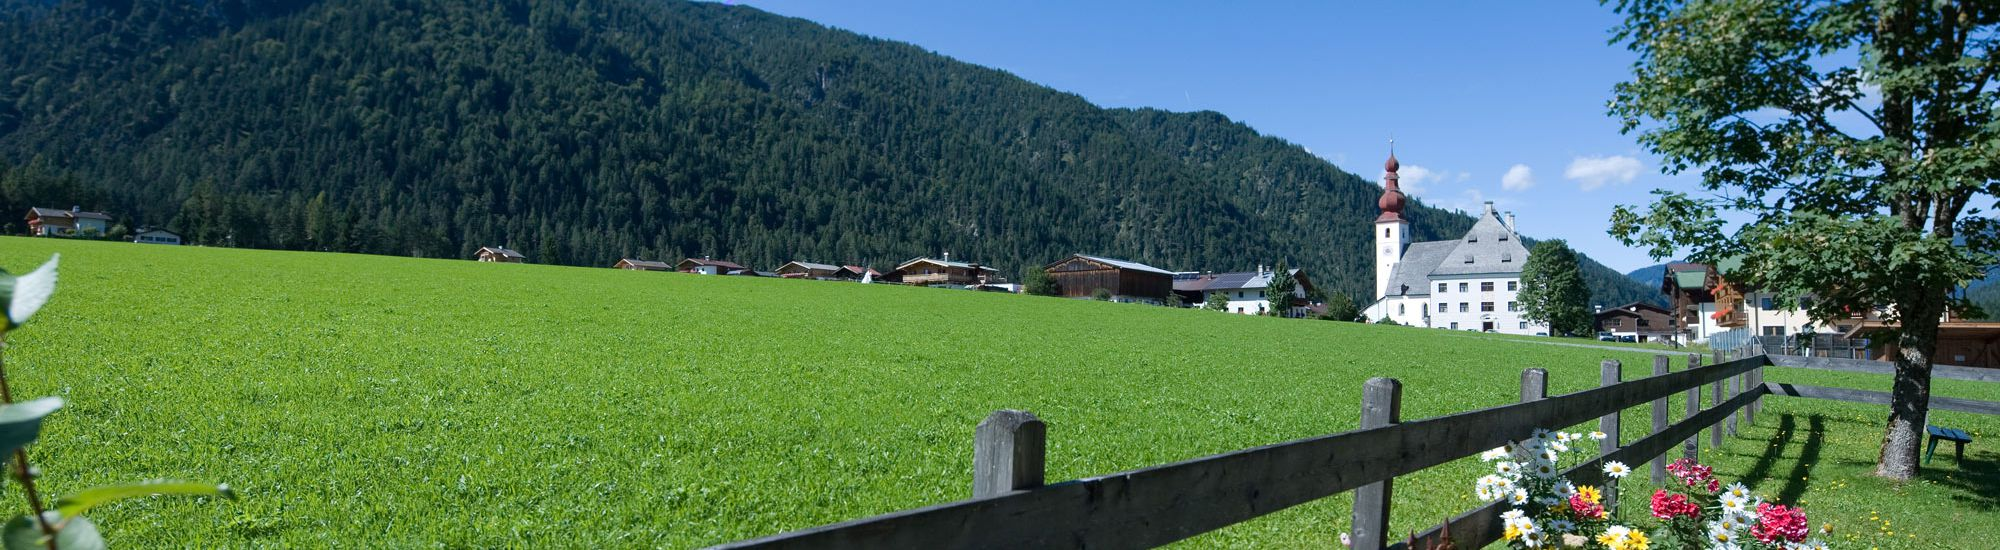 ferienpension-pillersee000